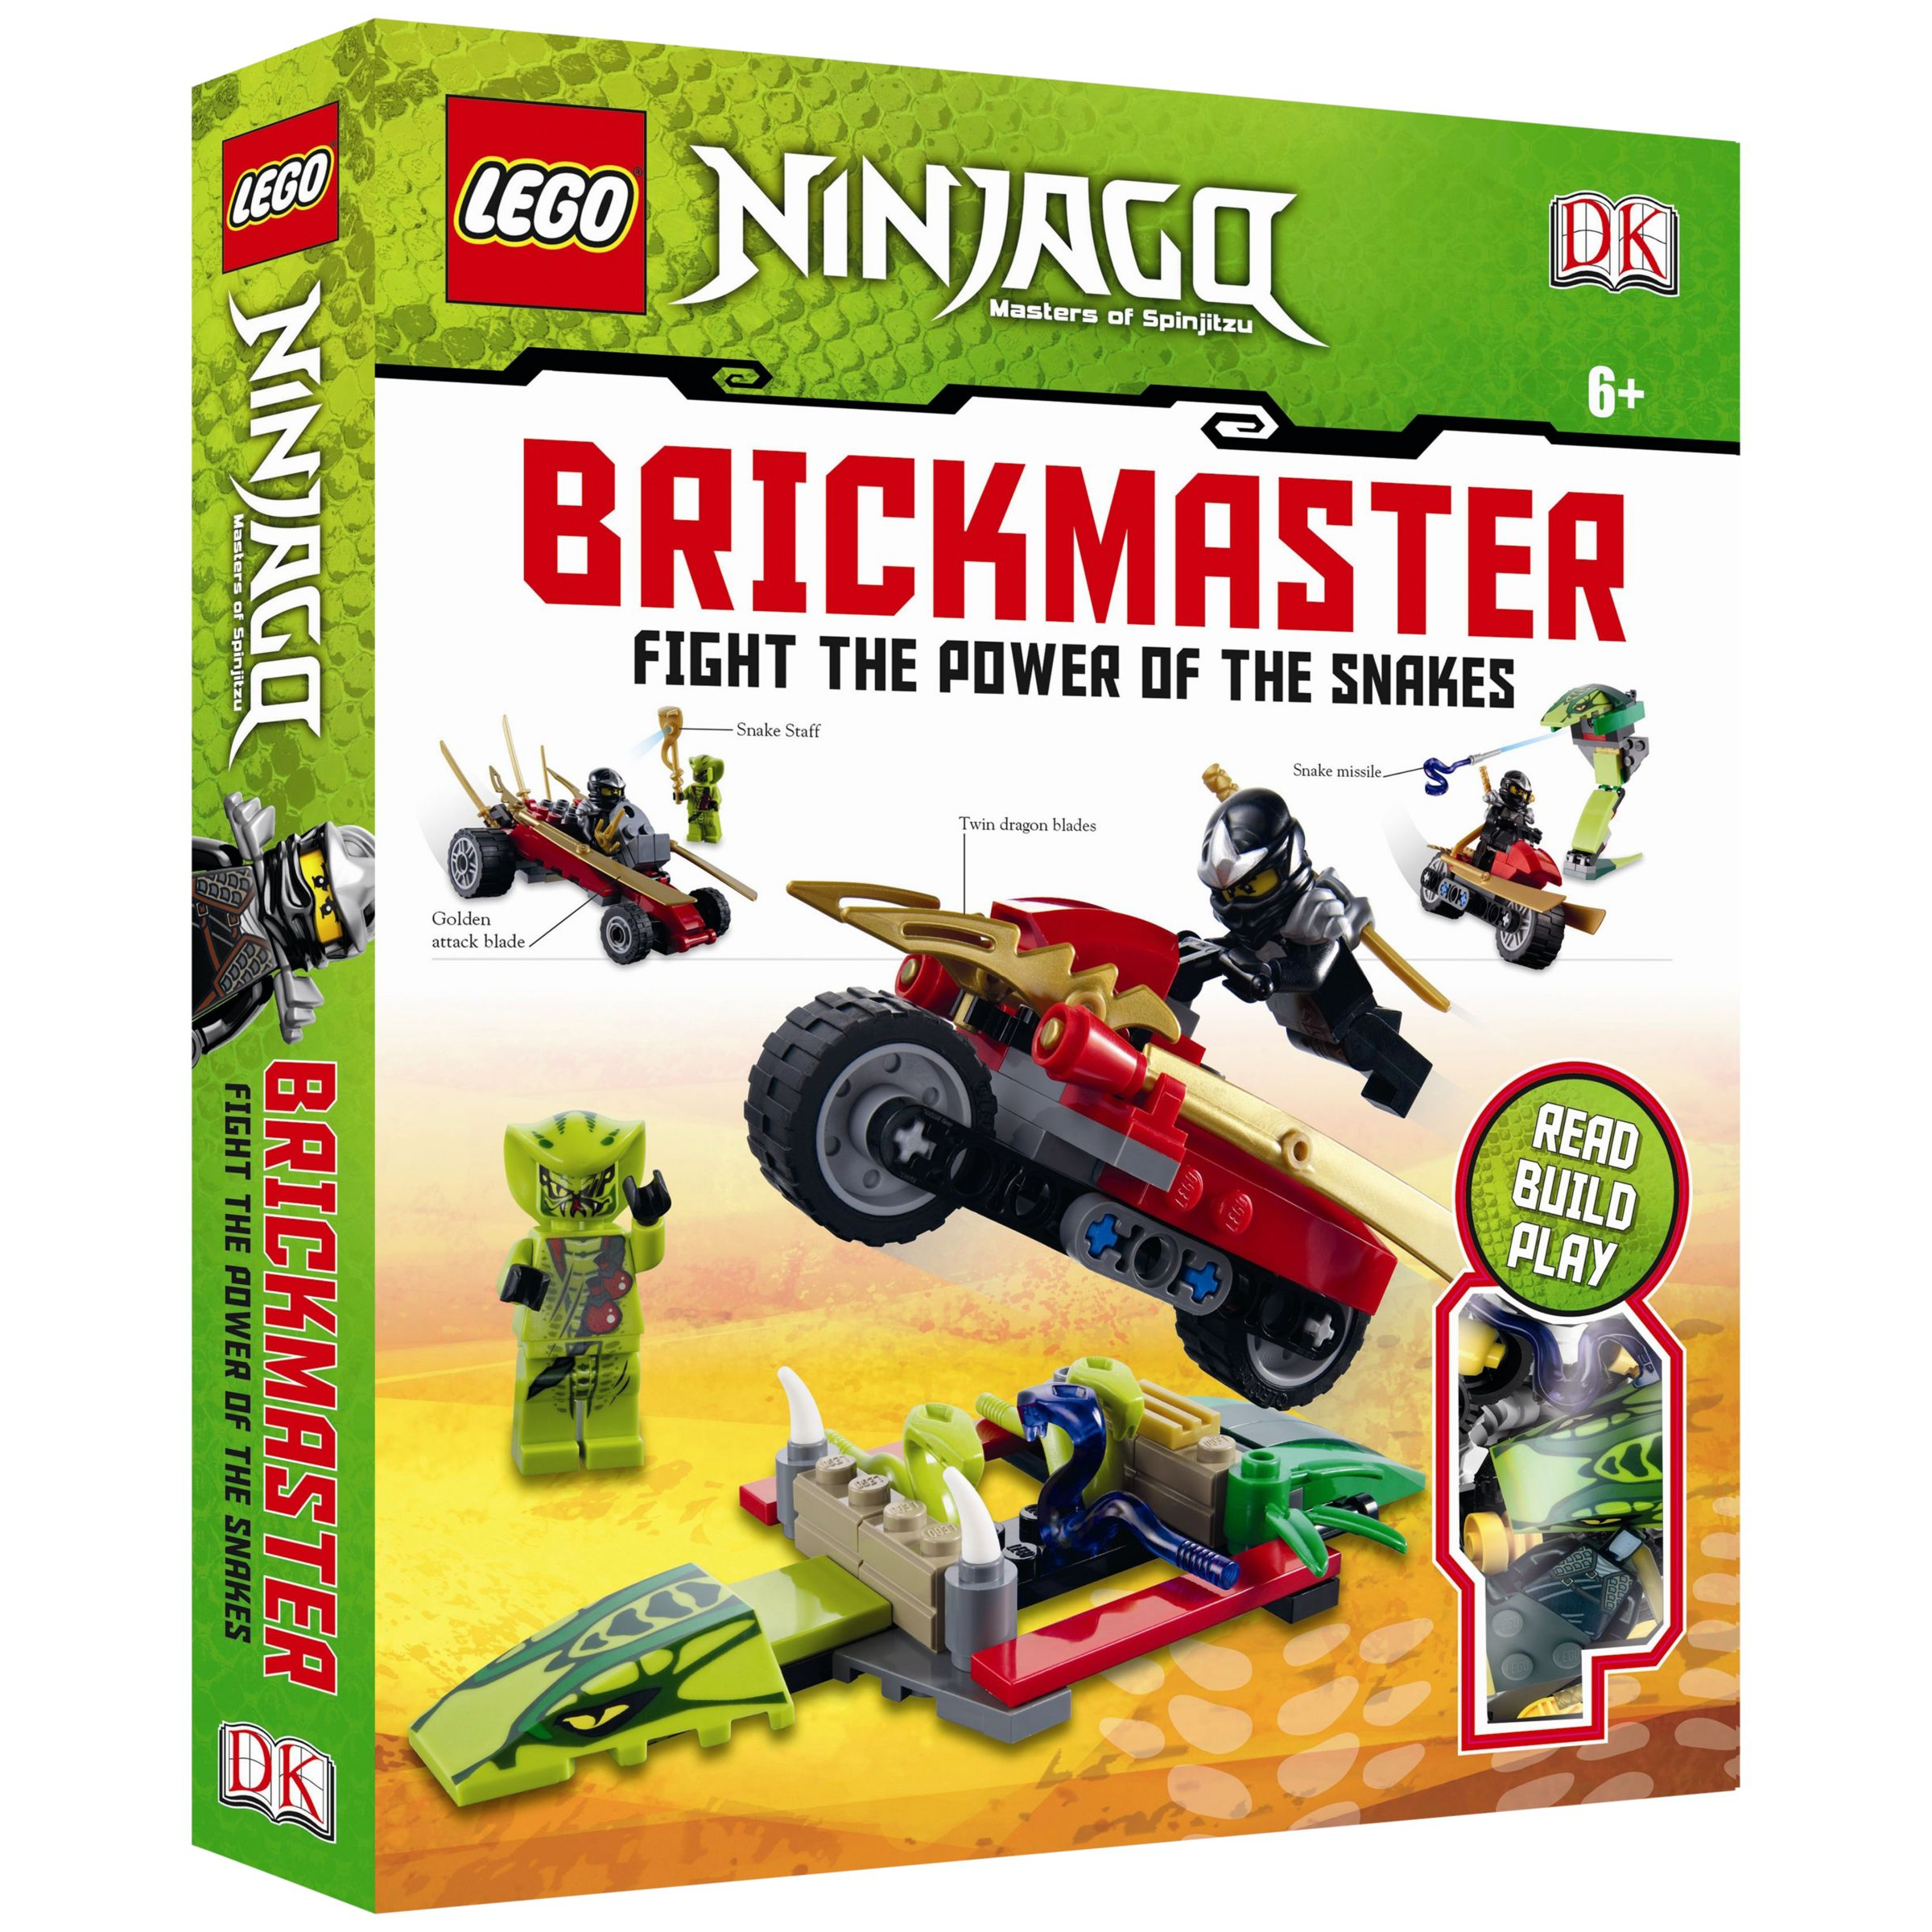 Lego Ninjago Brickmaster: Fight The Power of the Snakes